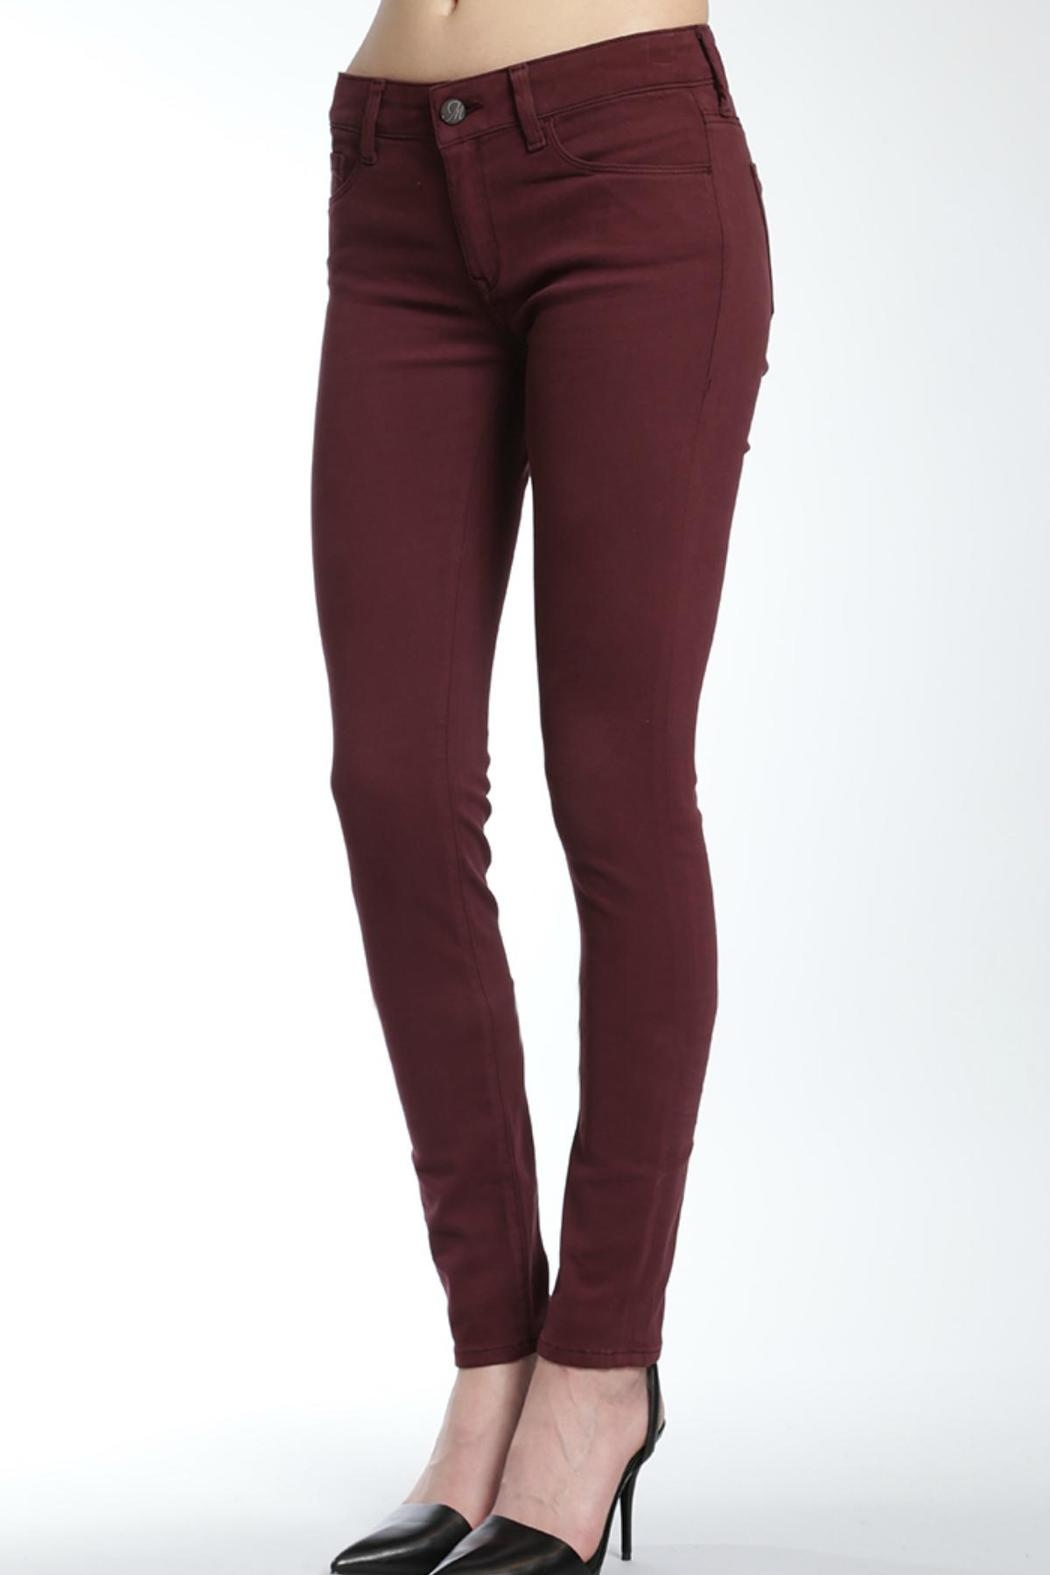 Mavi Jeans Burgandy Sateen Jeans from Canada by Ragdolz — Shoptiques